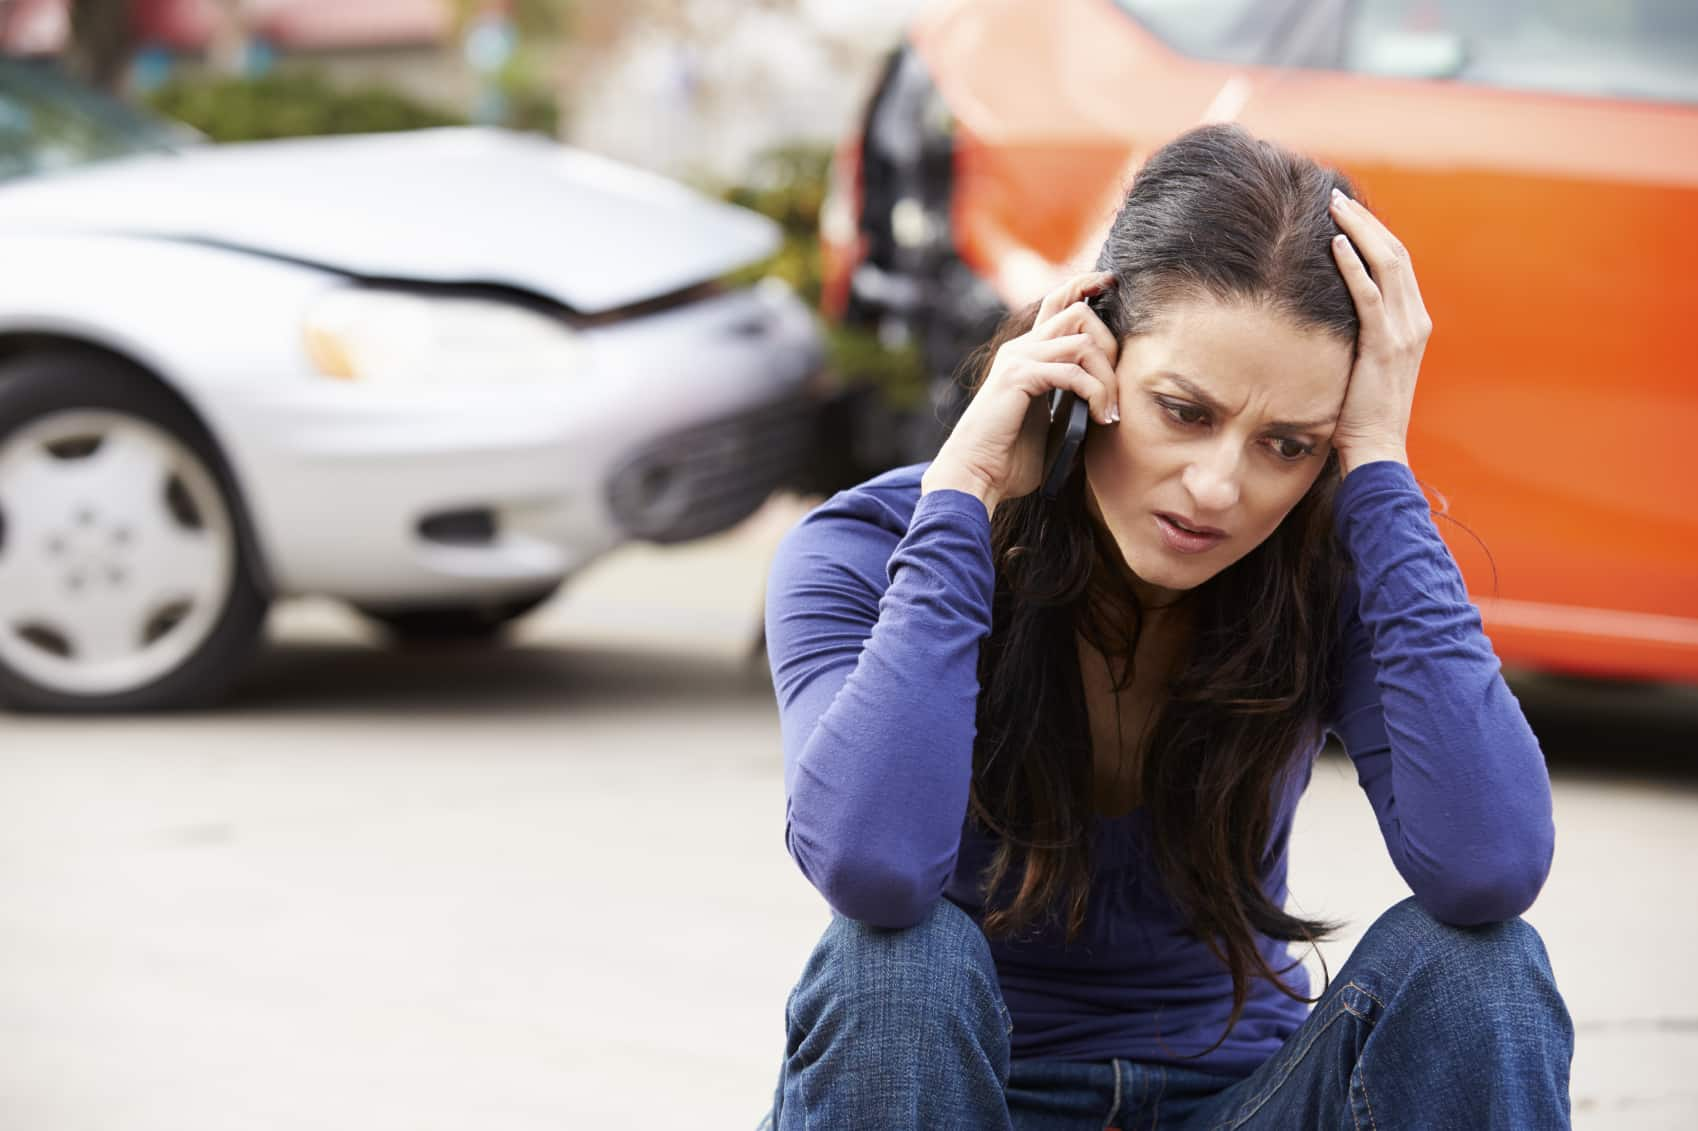 Rental/Leased car accident